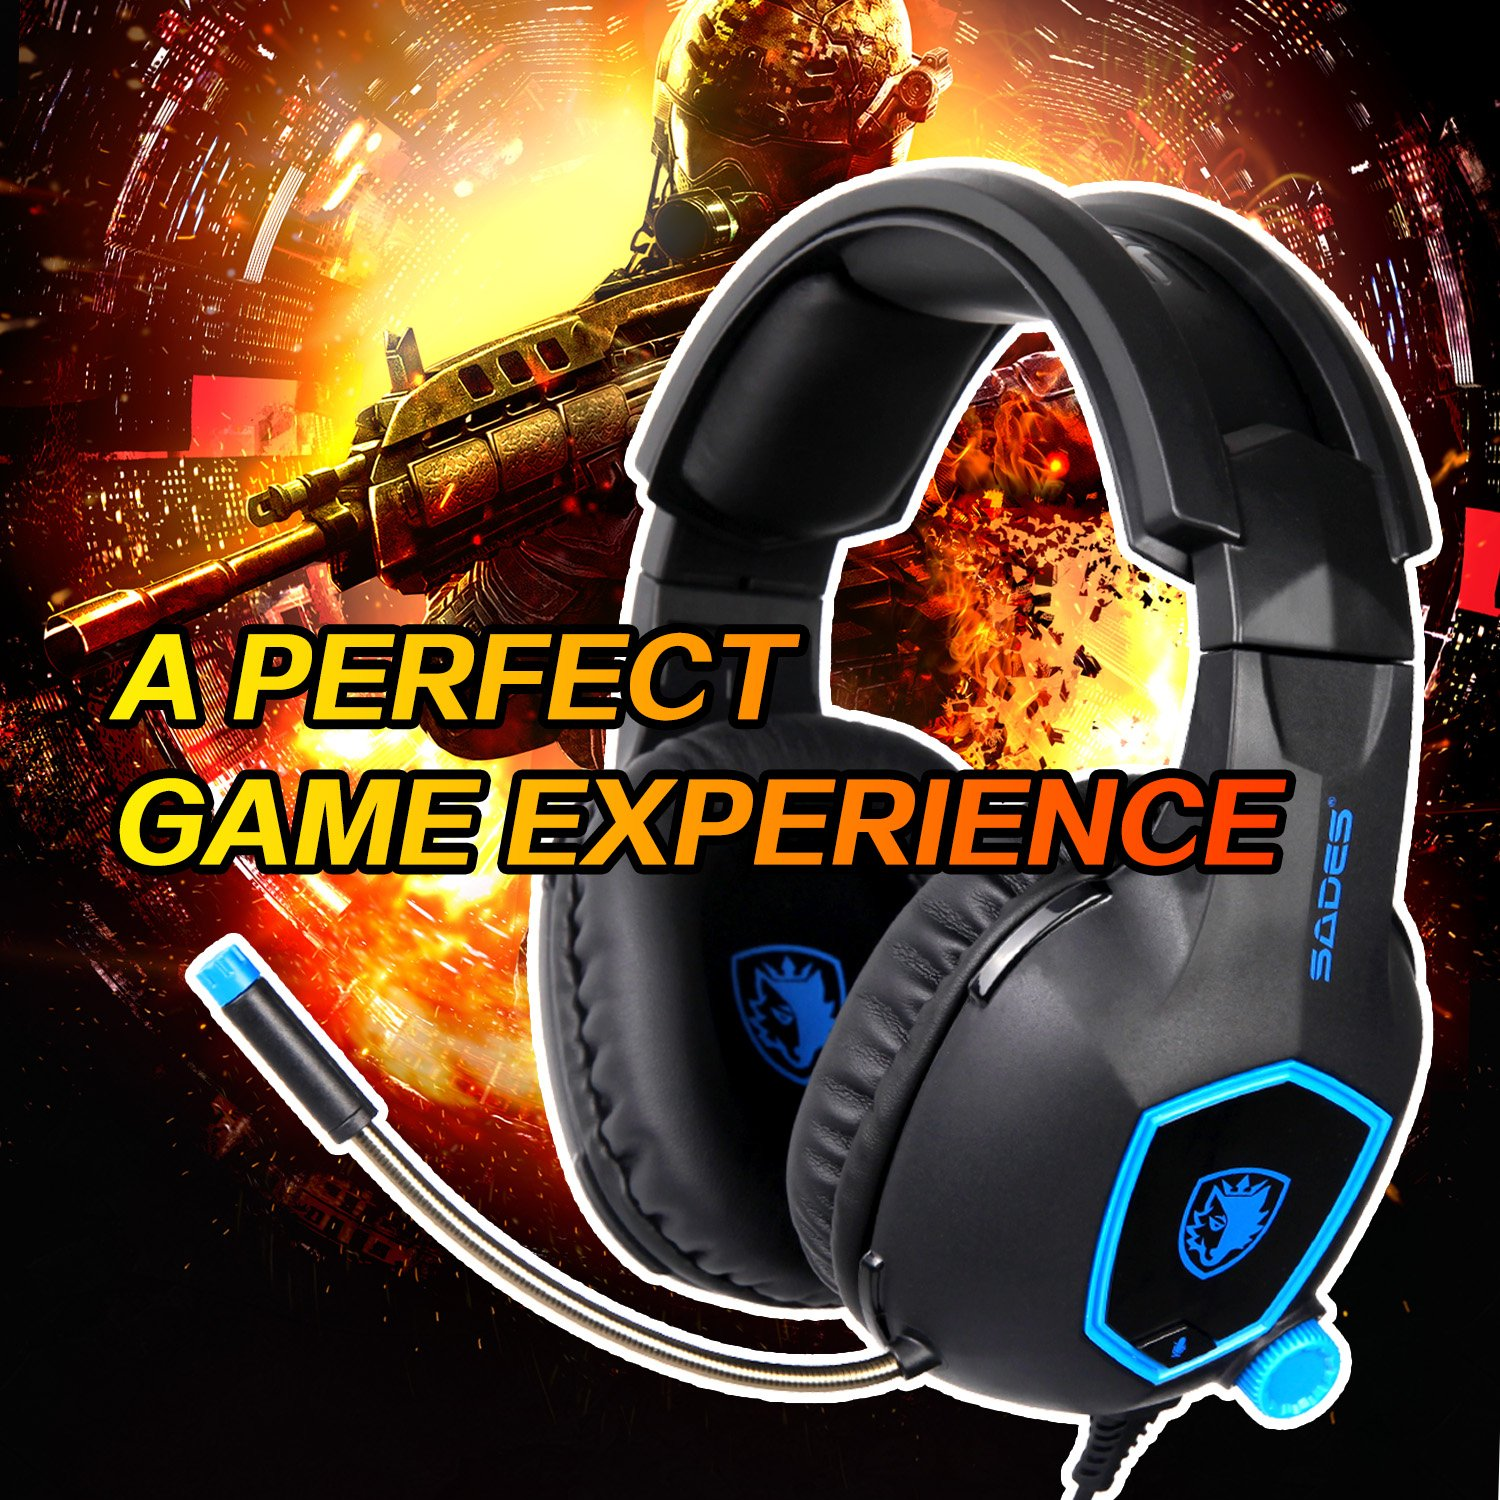 PS4 PRO SADES SA818 Xbox One PS4 PC Gaming Headset Gaming Over Ear Headphones with Mic For PS4 Black/&Blue Xbox One Xbox One S,Laptop Mac Tablet iPhone iPad iPod